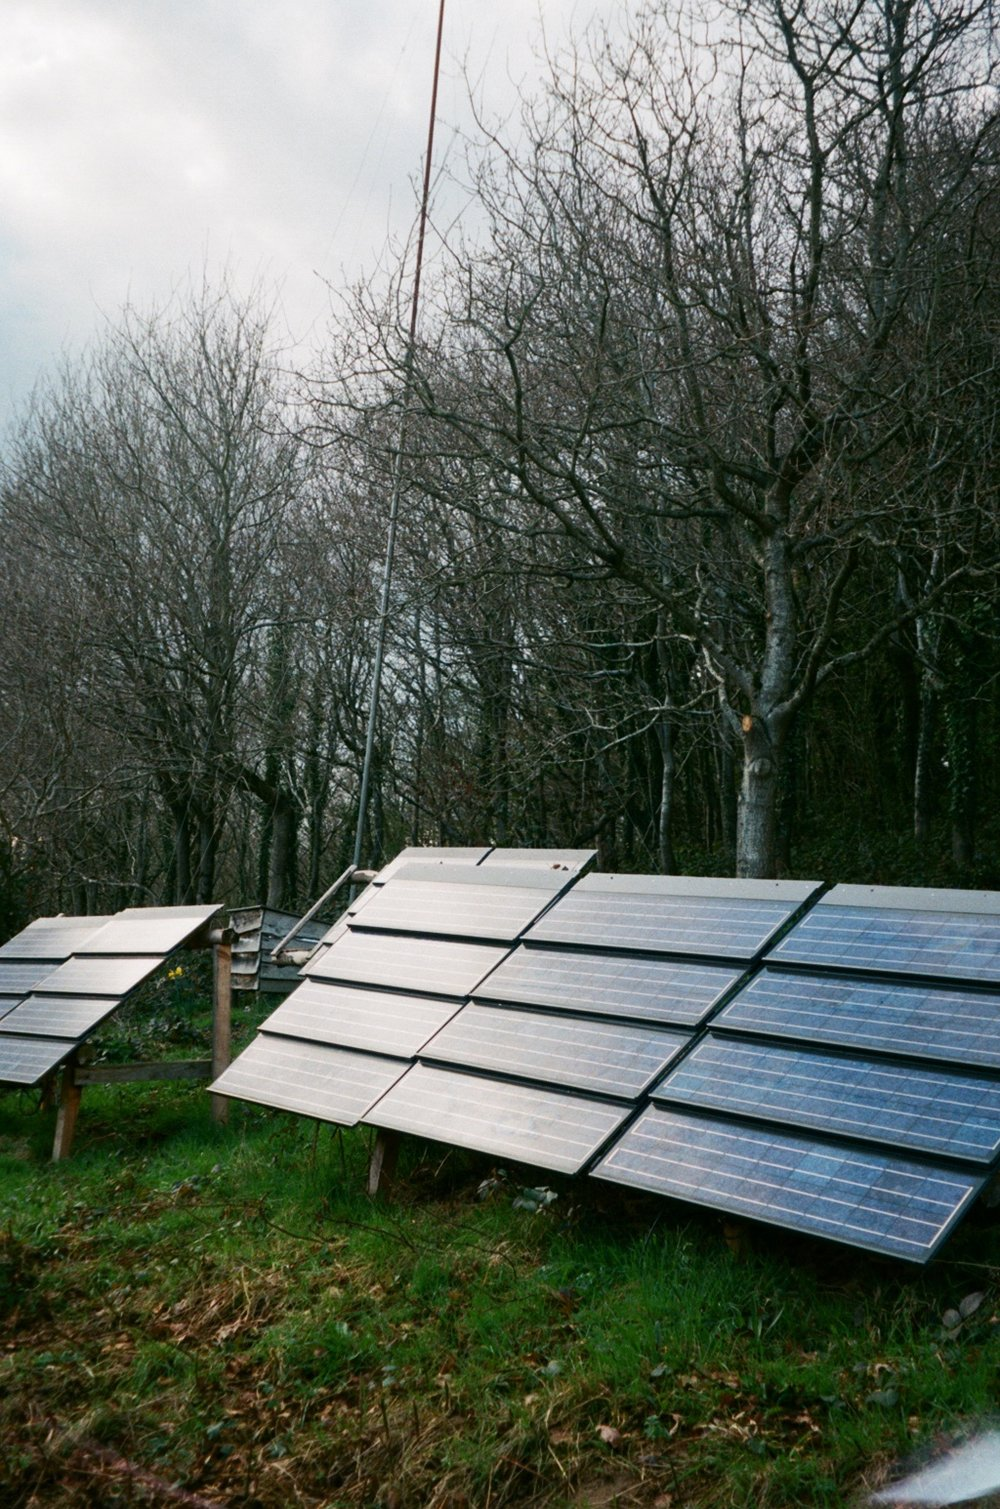 solar panels for energy .JPG